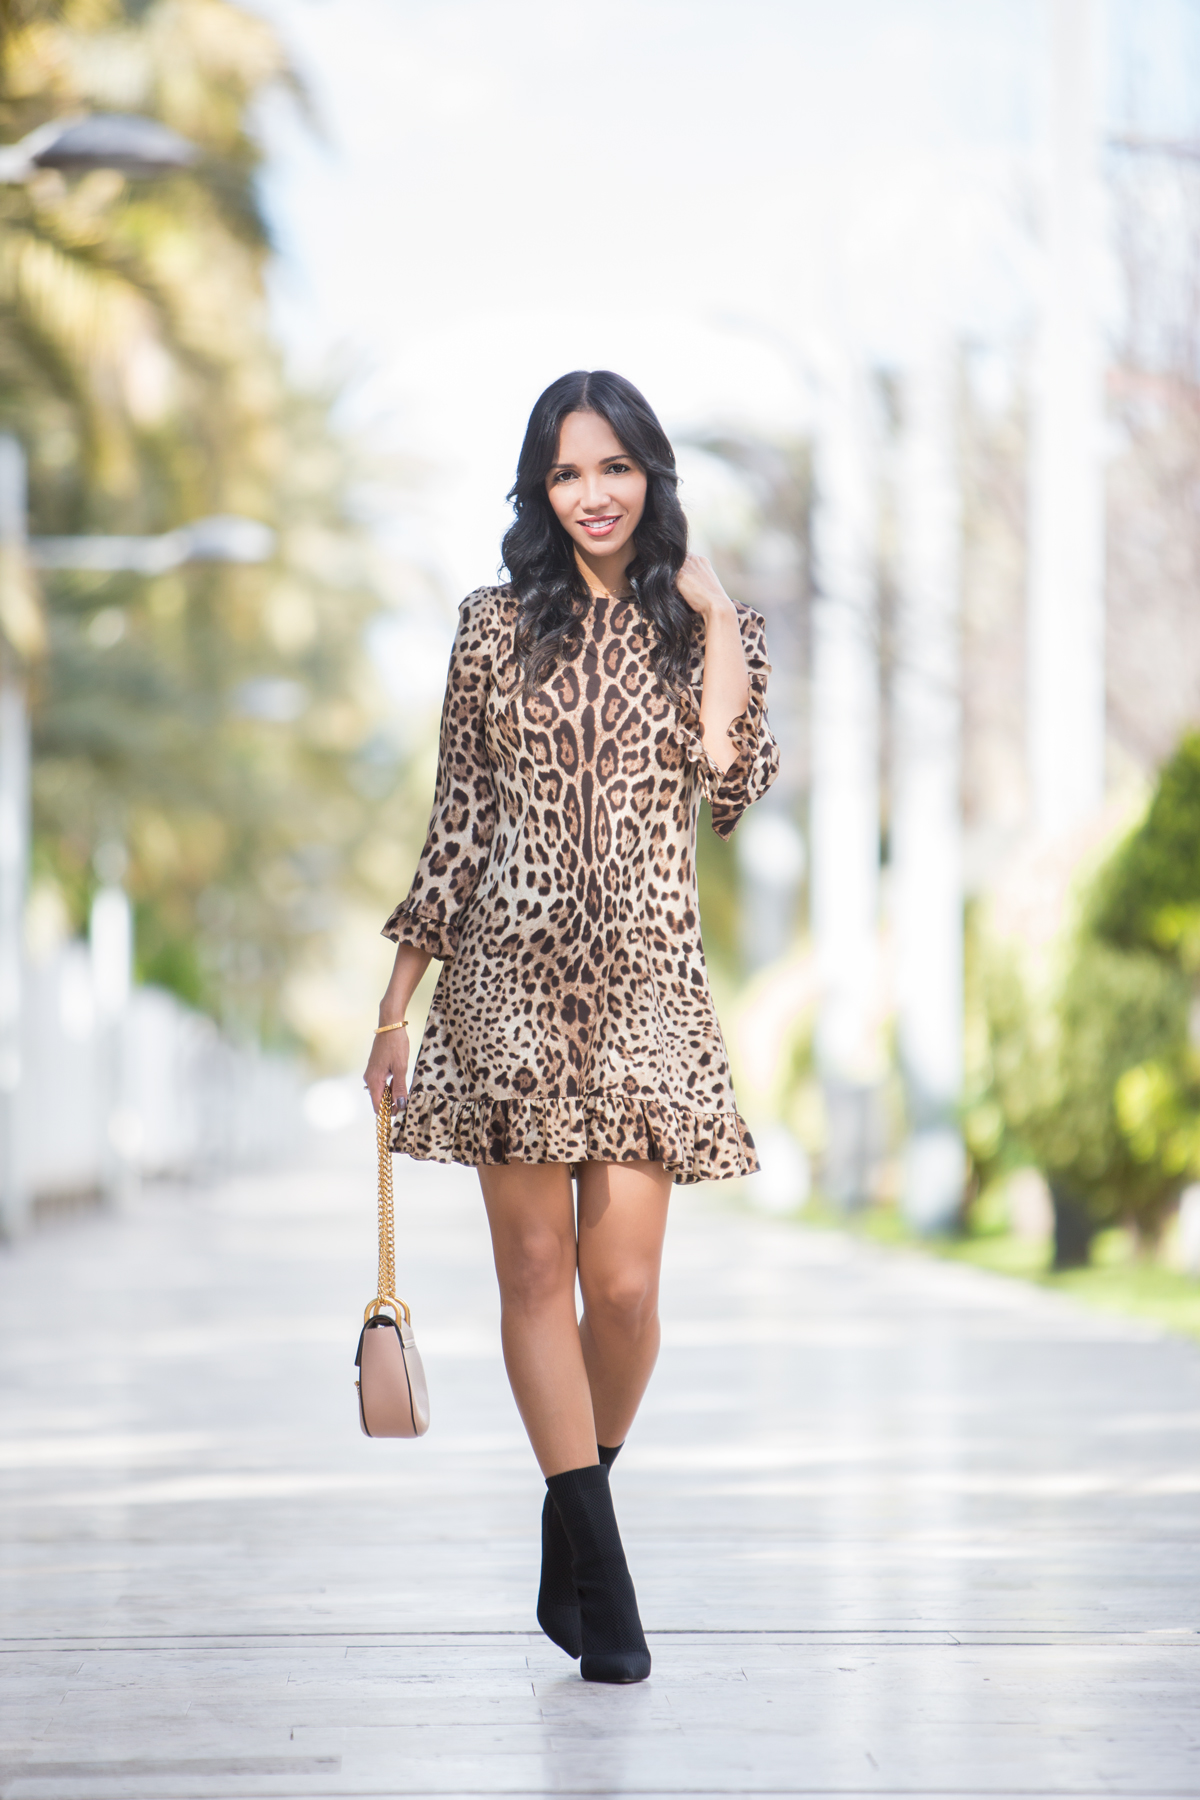 Vestido leopardo print Carolina Personal Shopper